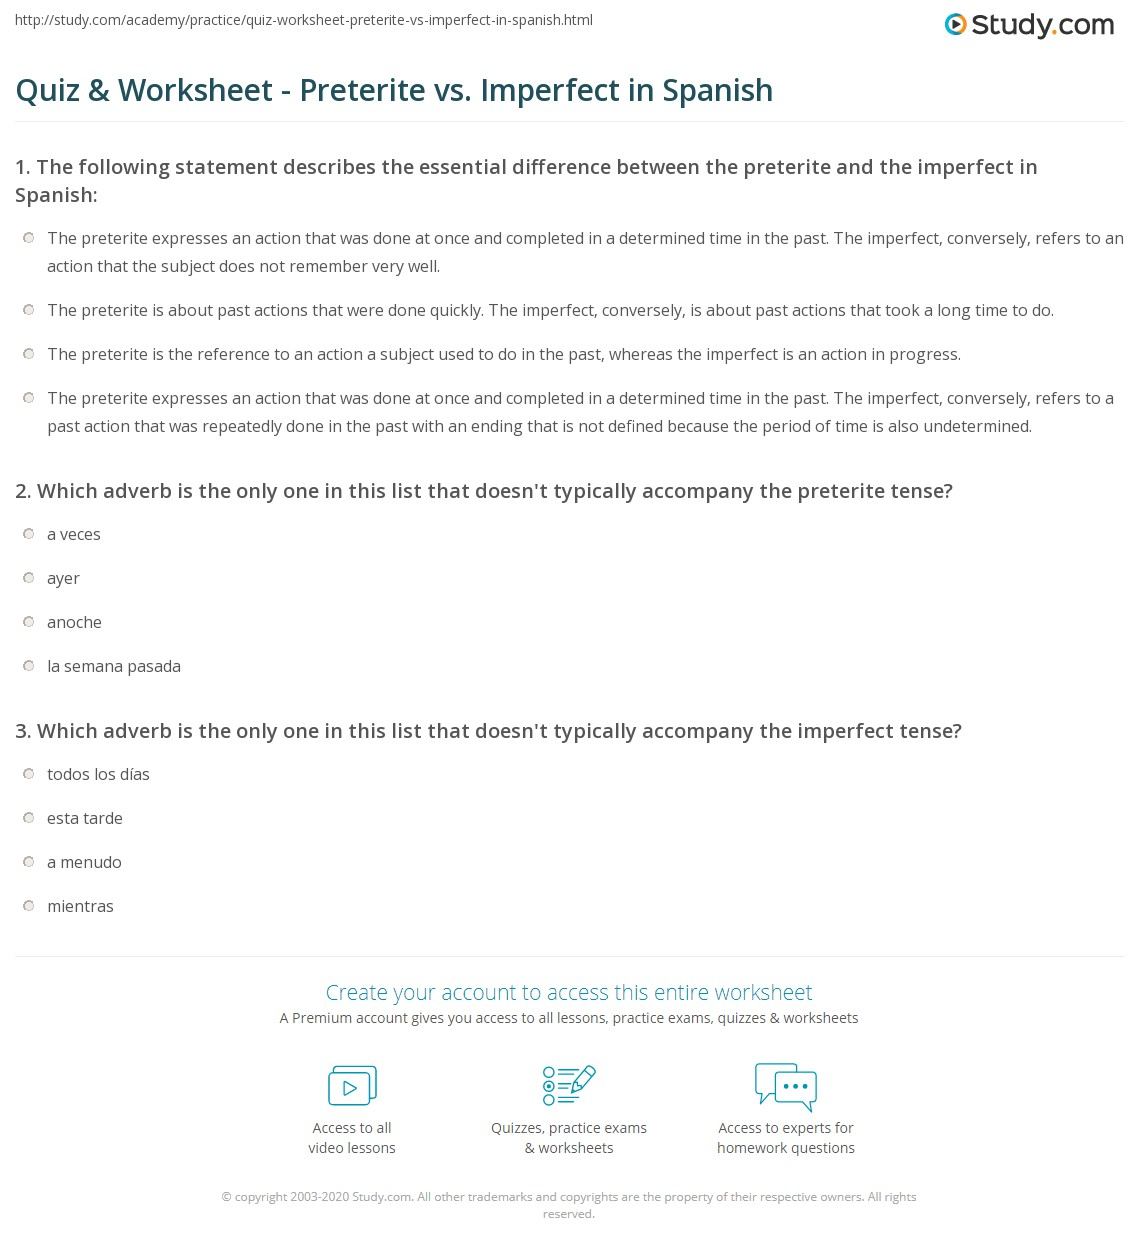 Preterite Vs Imperfect Worksheet With Answers - Worksheets